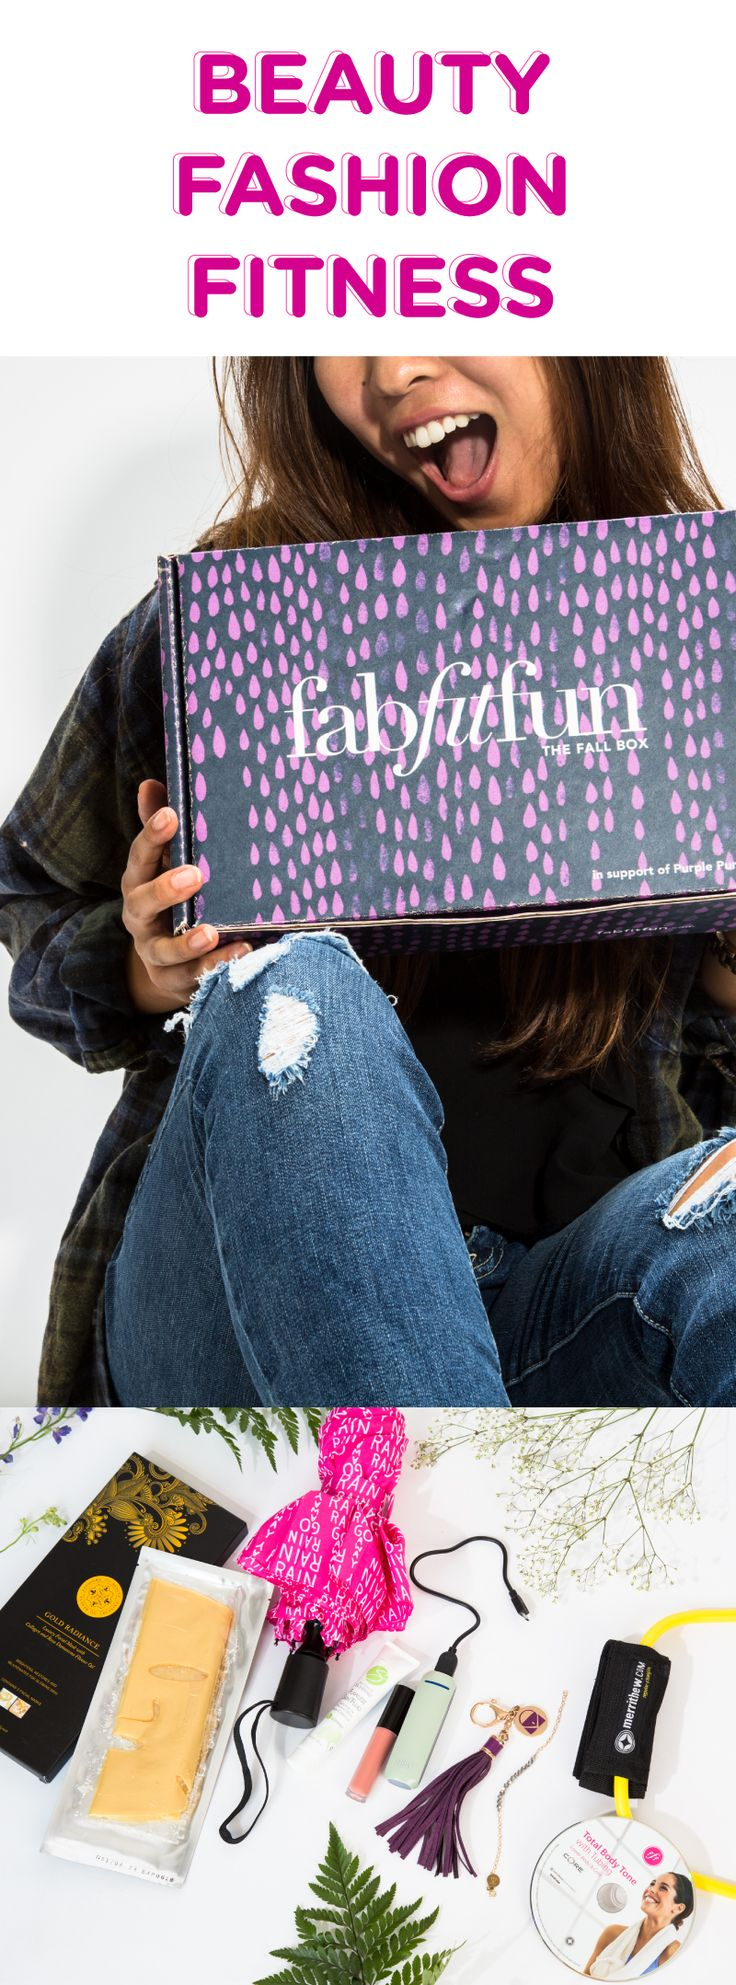 Get fab with FabFitFun! Each season we deliver a box of premium, full-size beauty, fashion, & fitness products to your door. Try us out and see why we're the #1 full-size box! Boxes ship free within the continental U.S.